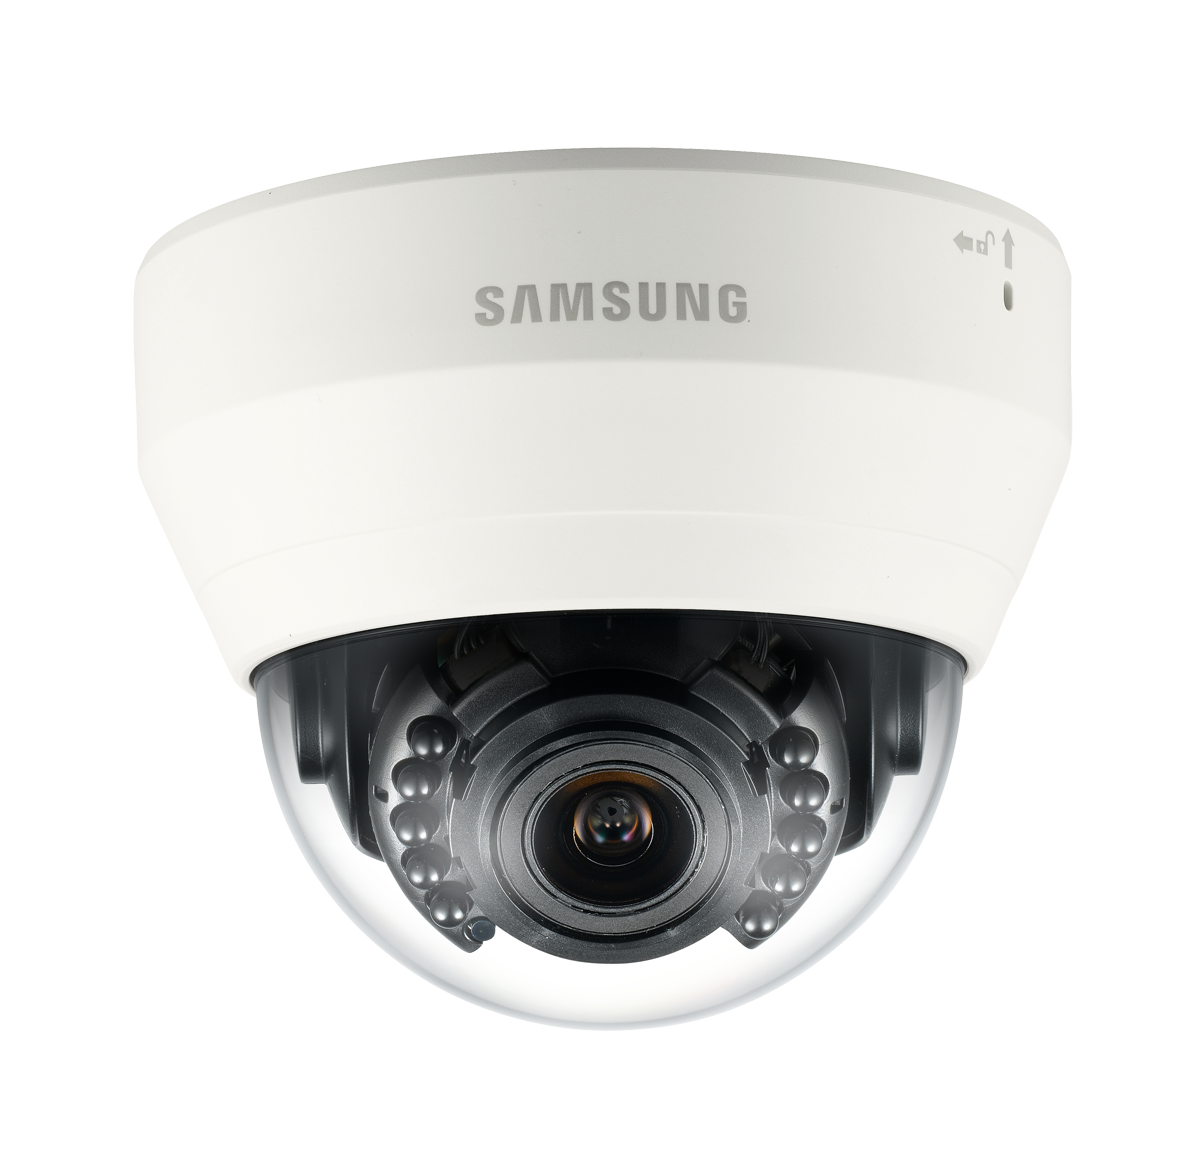 samsung techwin launches wisenet lite security camera series for end users thesecuritylion. Black Bedroom Furniture Sets. Home Design Ideas